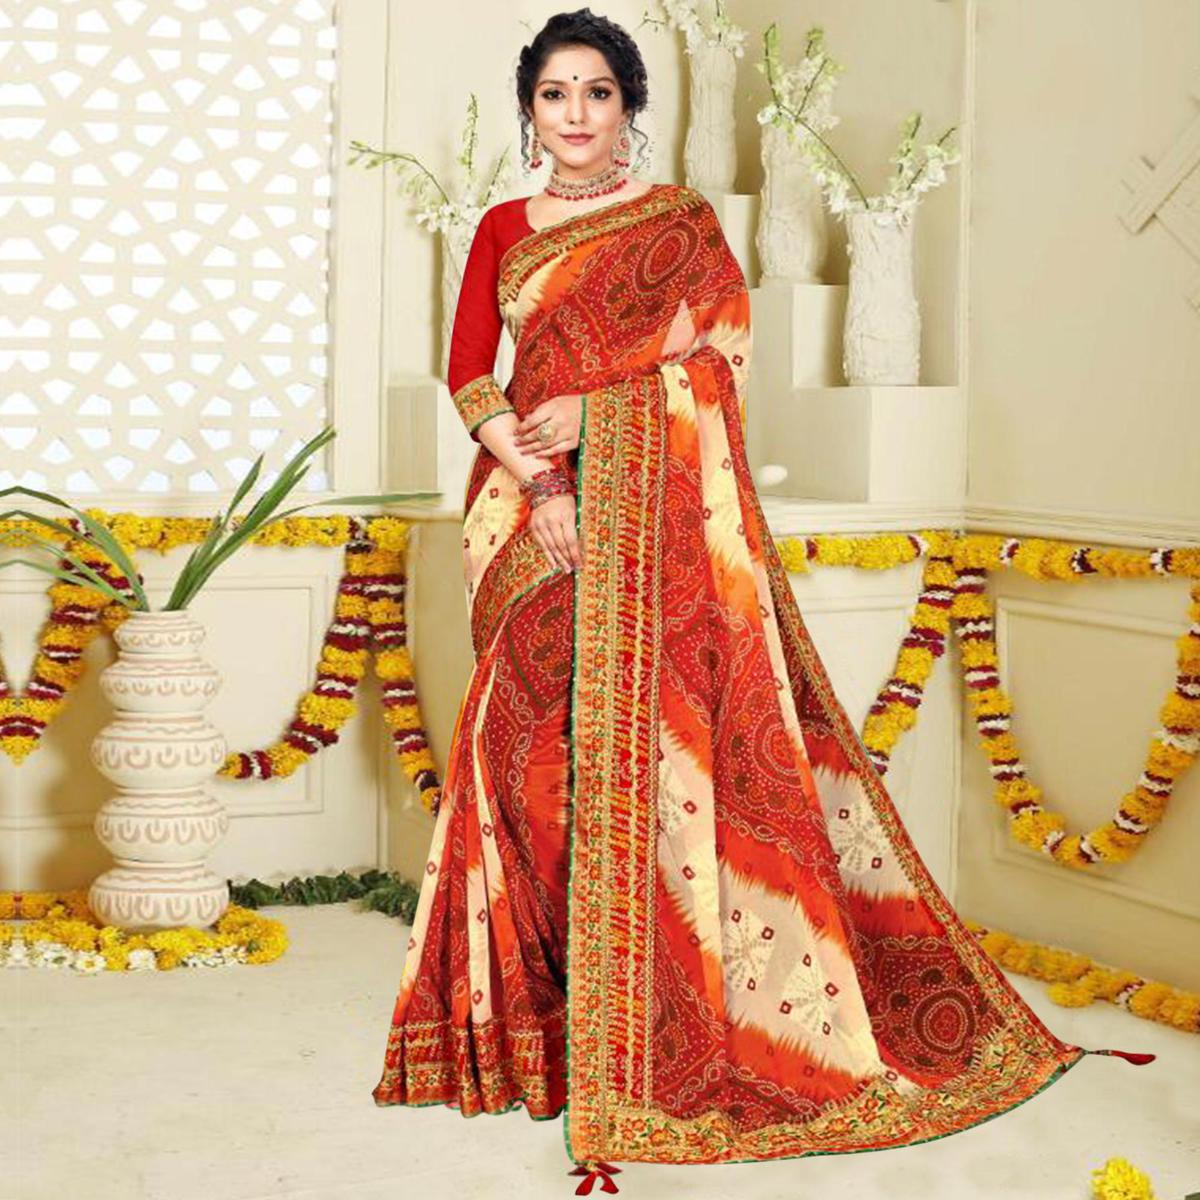 Innovative Red and White Colored Festive Wear Bandhani Print With Zari Border Work And Latkan Heavy Georgette Saree